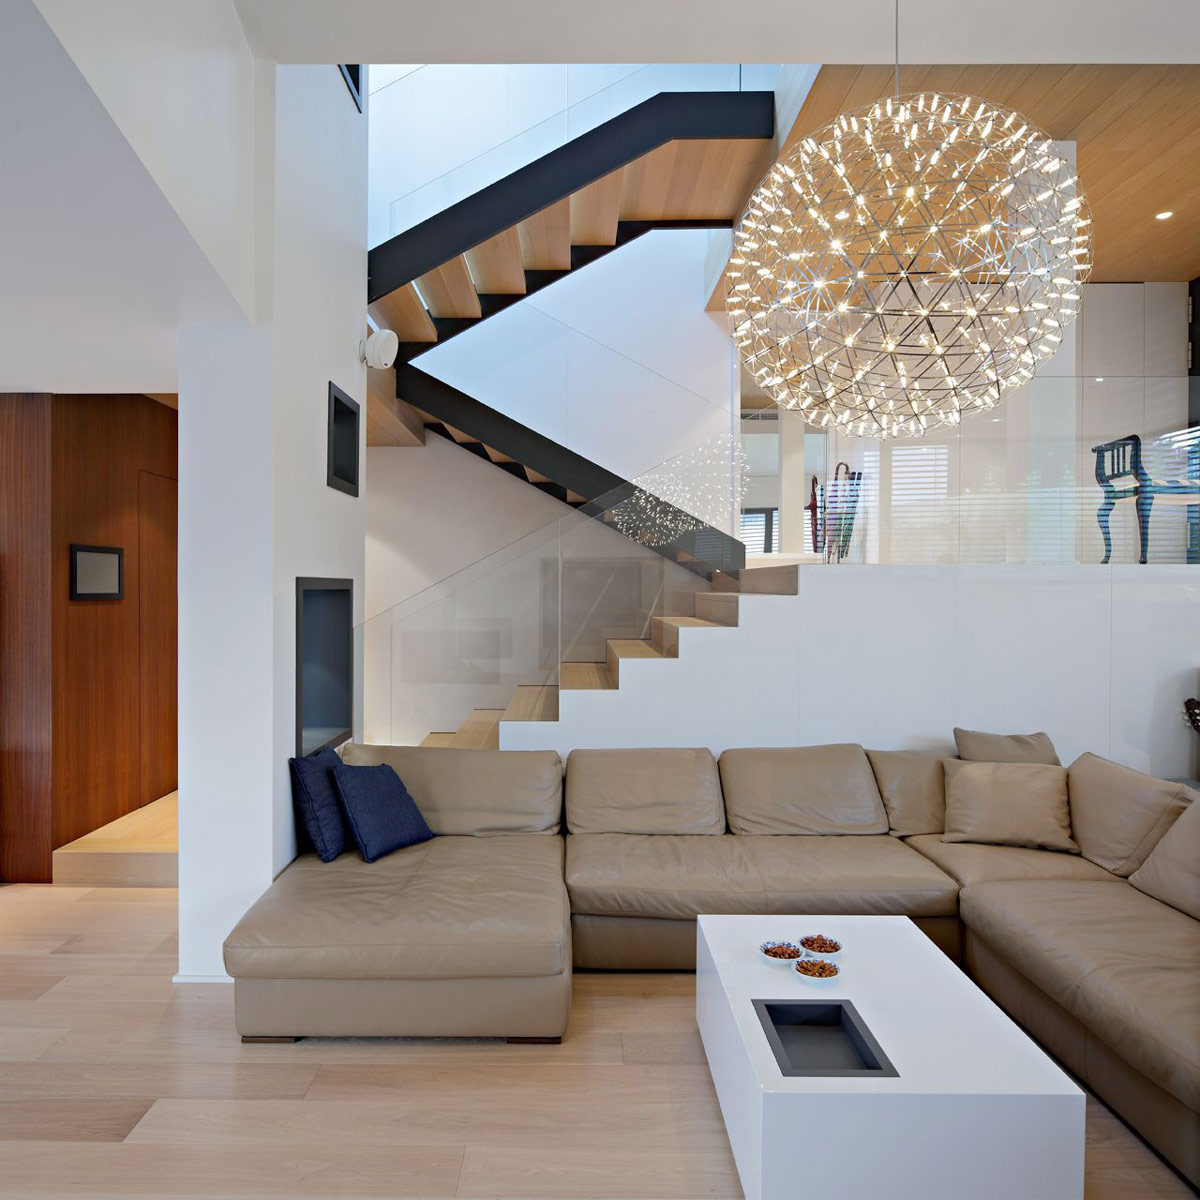 Moderne Holzdecke Sofa Lighting Stairs A 43a House In Zagreb Croatia By